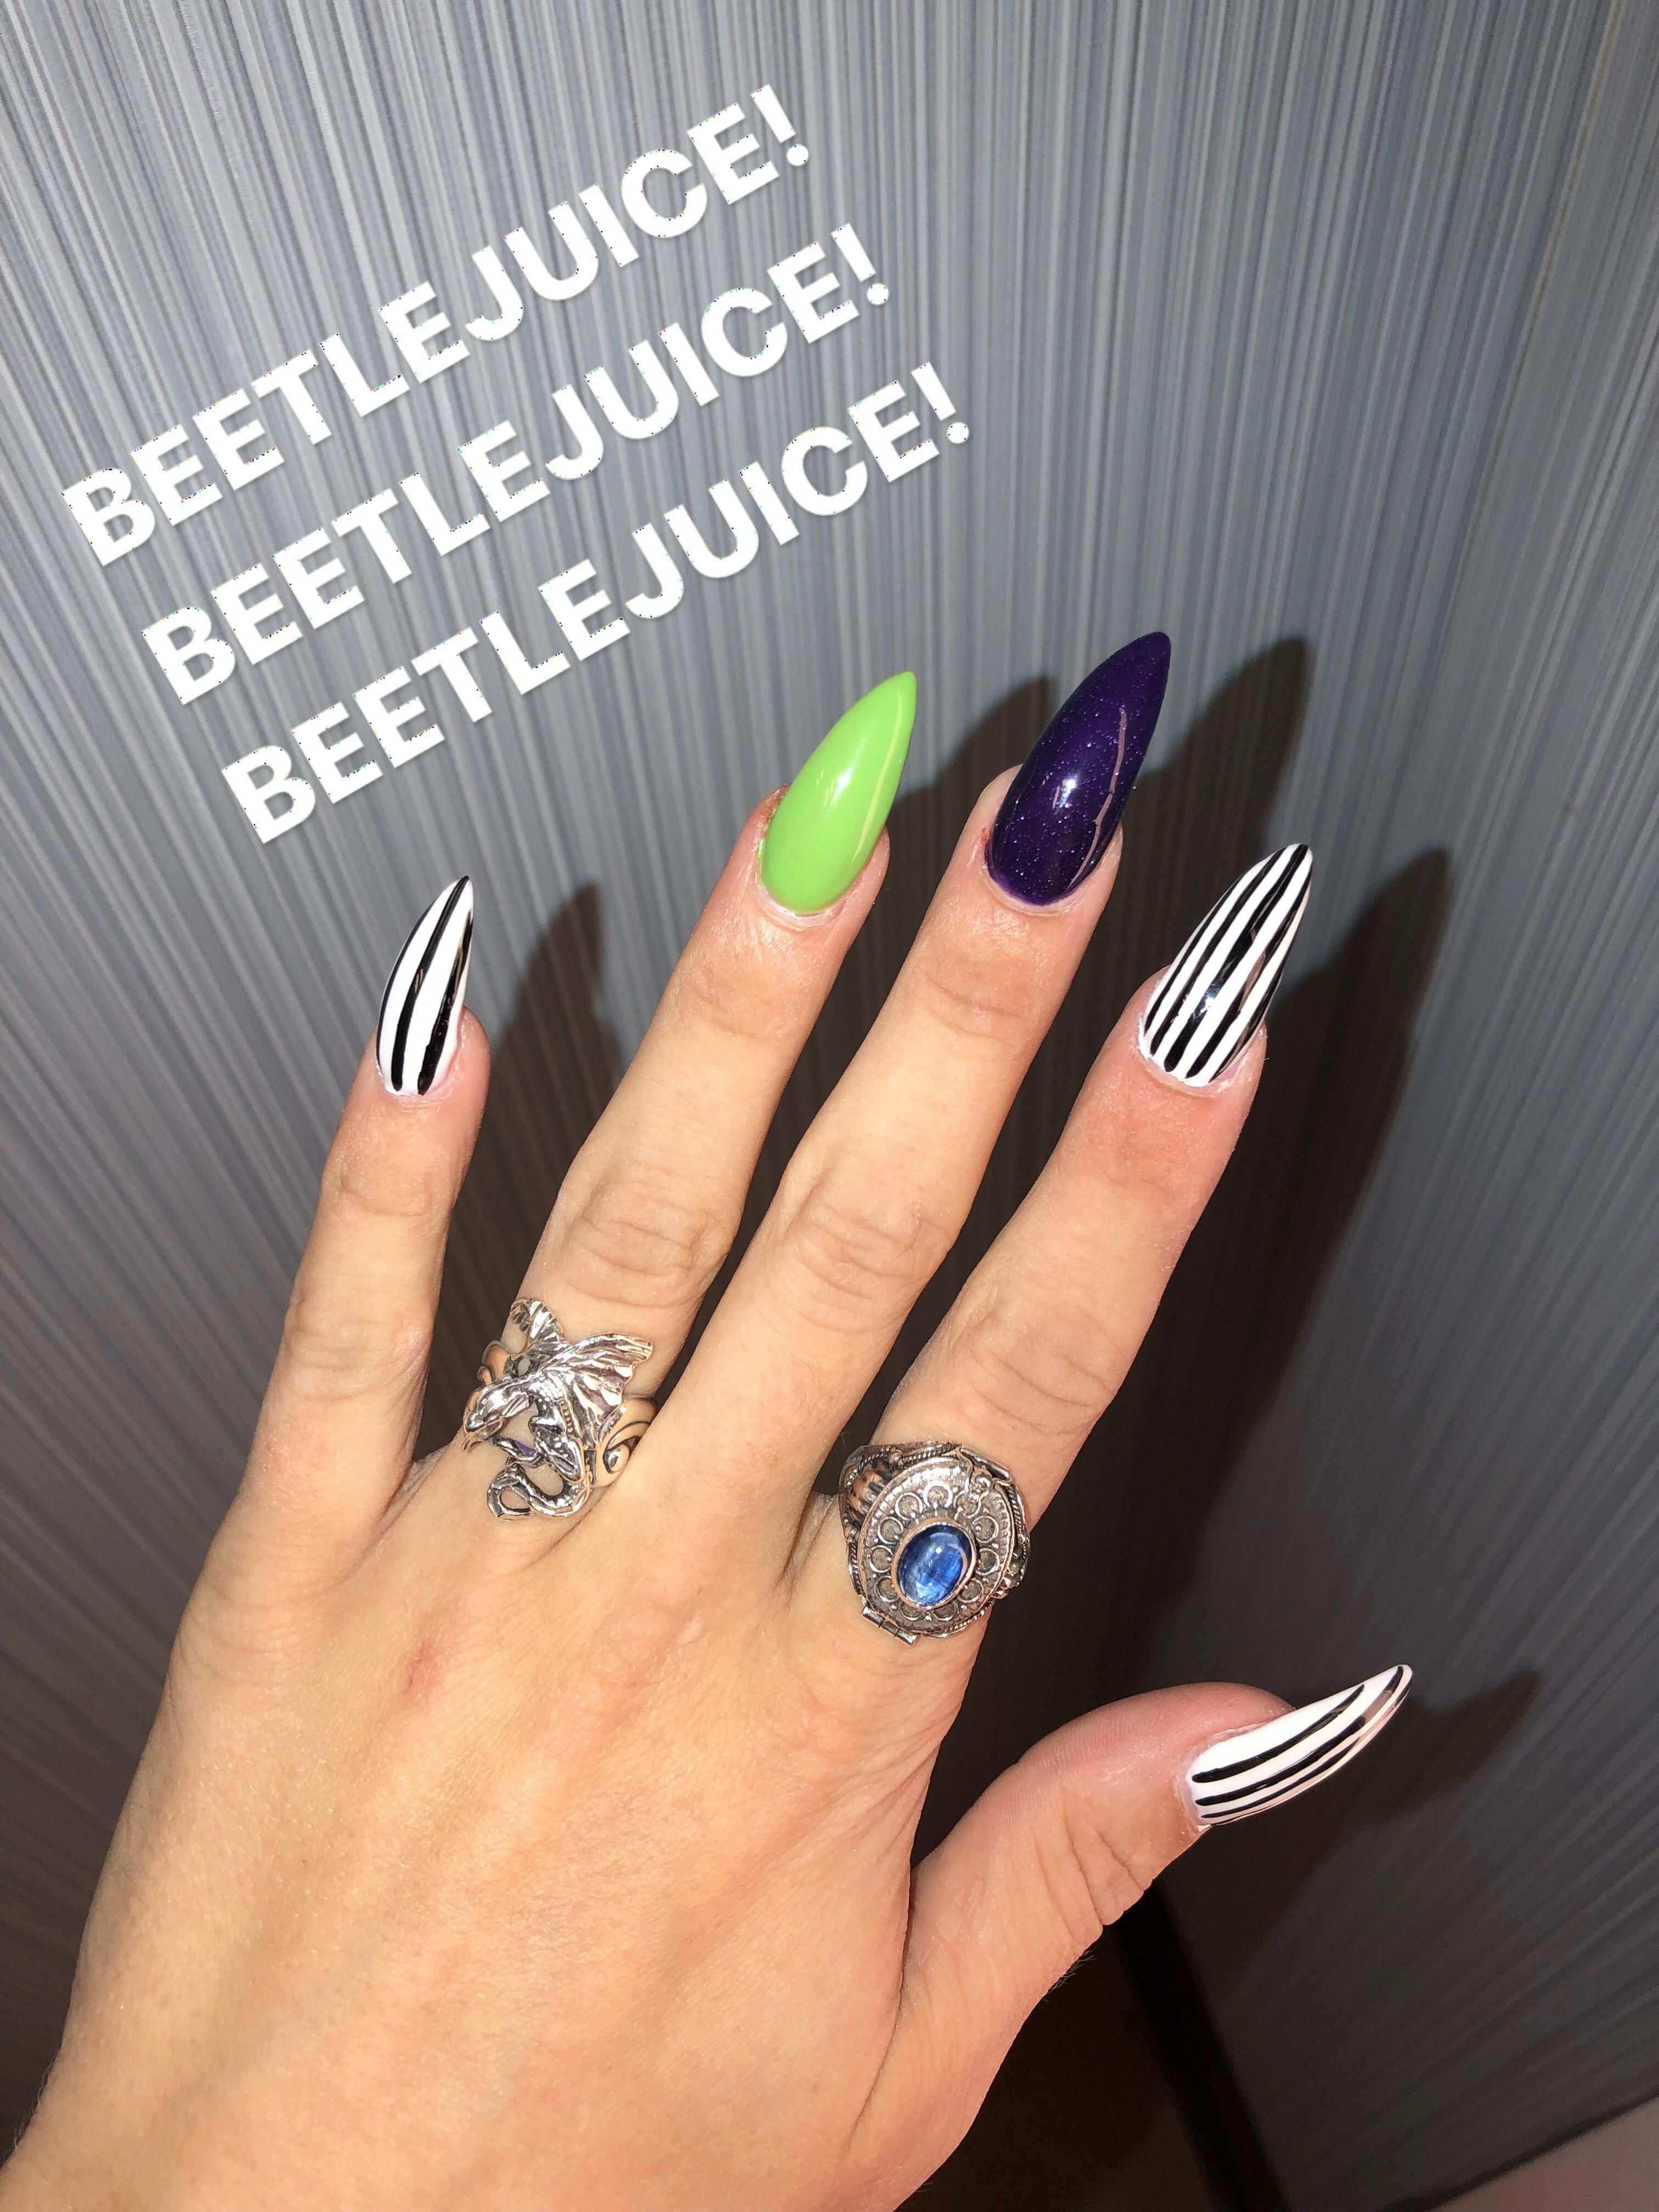 POLISH TRENDS FOR THE SUMMER: BOLDNESS AND JOY TO LIVE ...